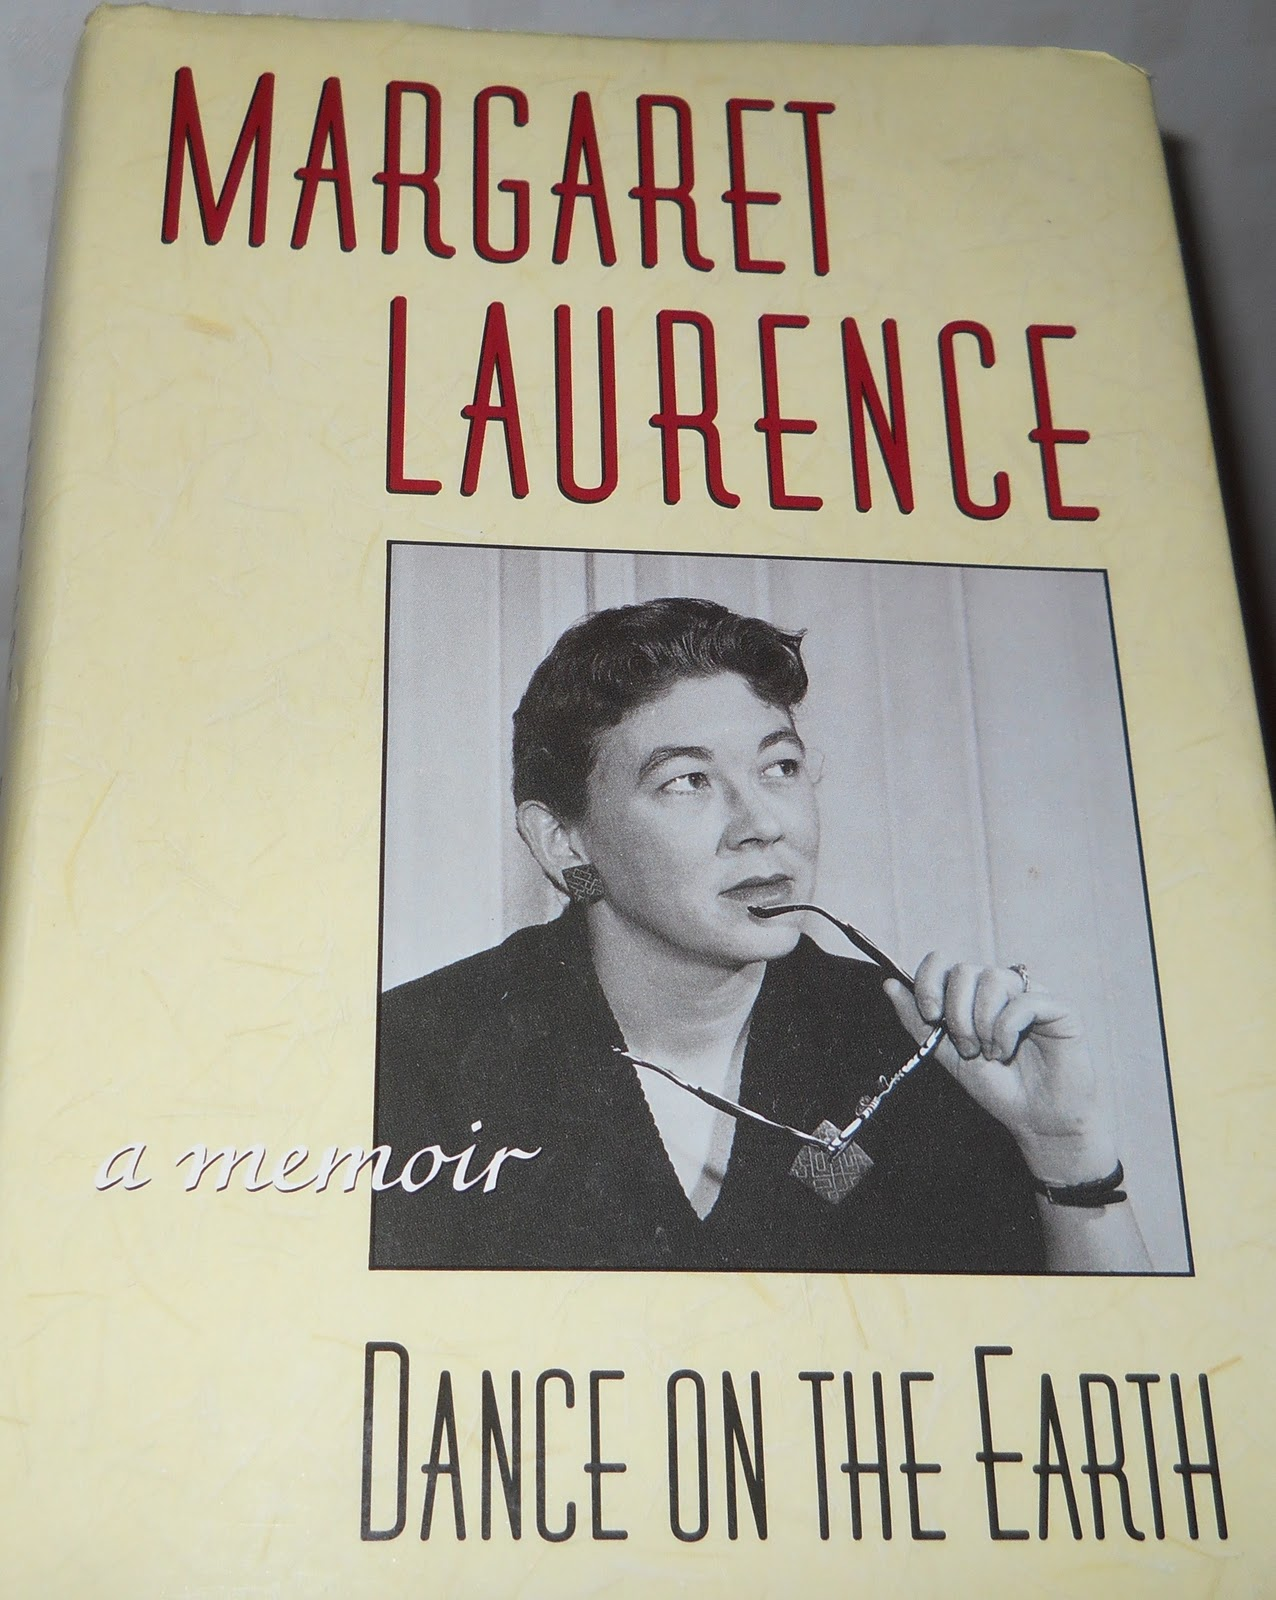 an analysis of the stone angel a novel by margaret laurence Margaret laurence's novel celebrates the triumph of the spirit through the story of a young girl growing up on the from the stone angel by margaret laurence ©1964.